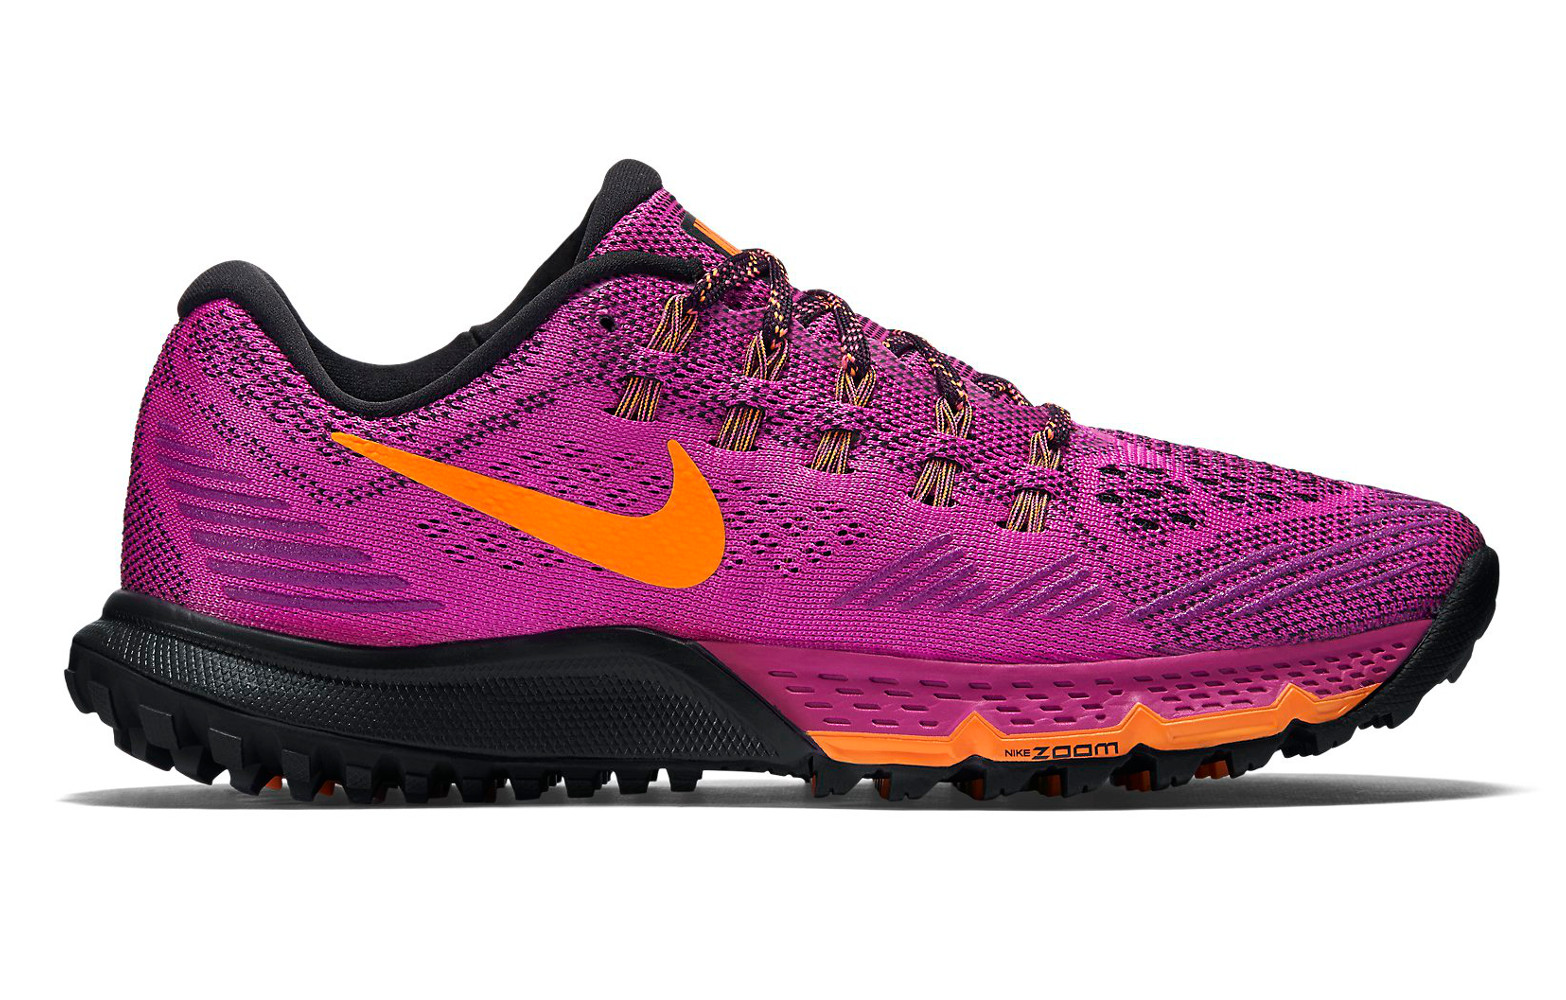 newest fc6a7 99f70 Chaussures de Trail Femme Nike ZOOM TERRA KIGER 3 Rose